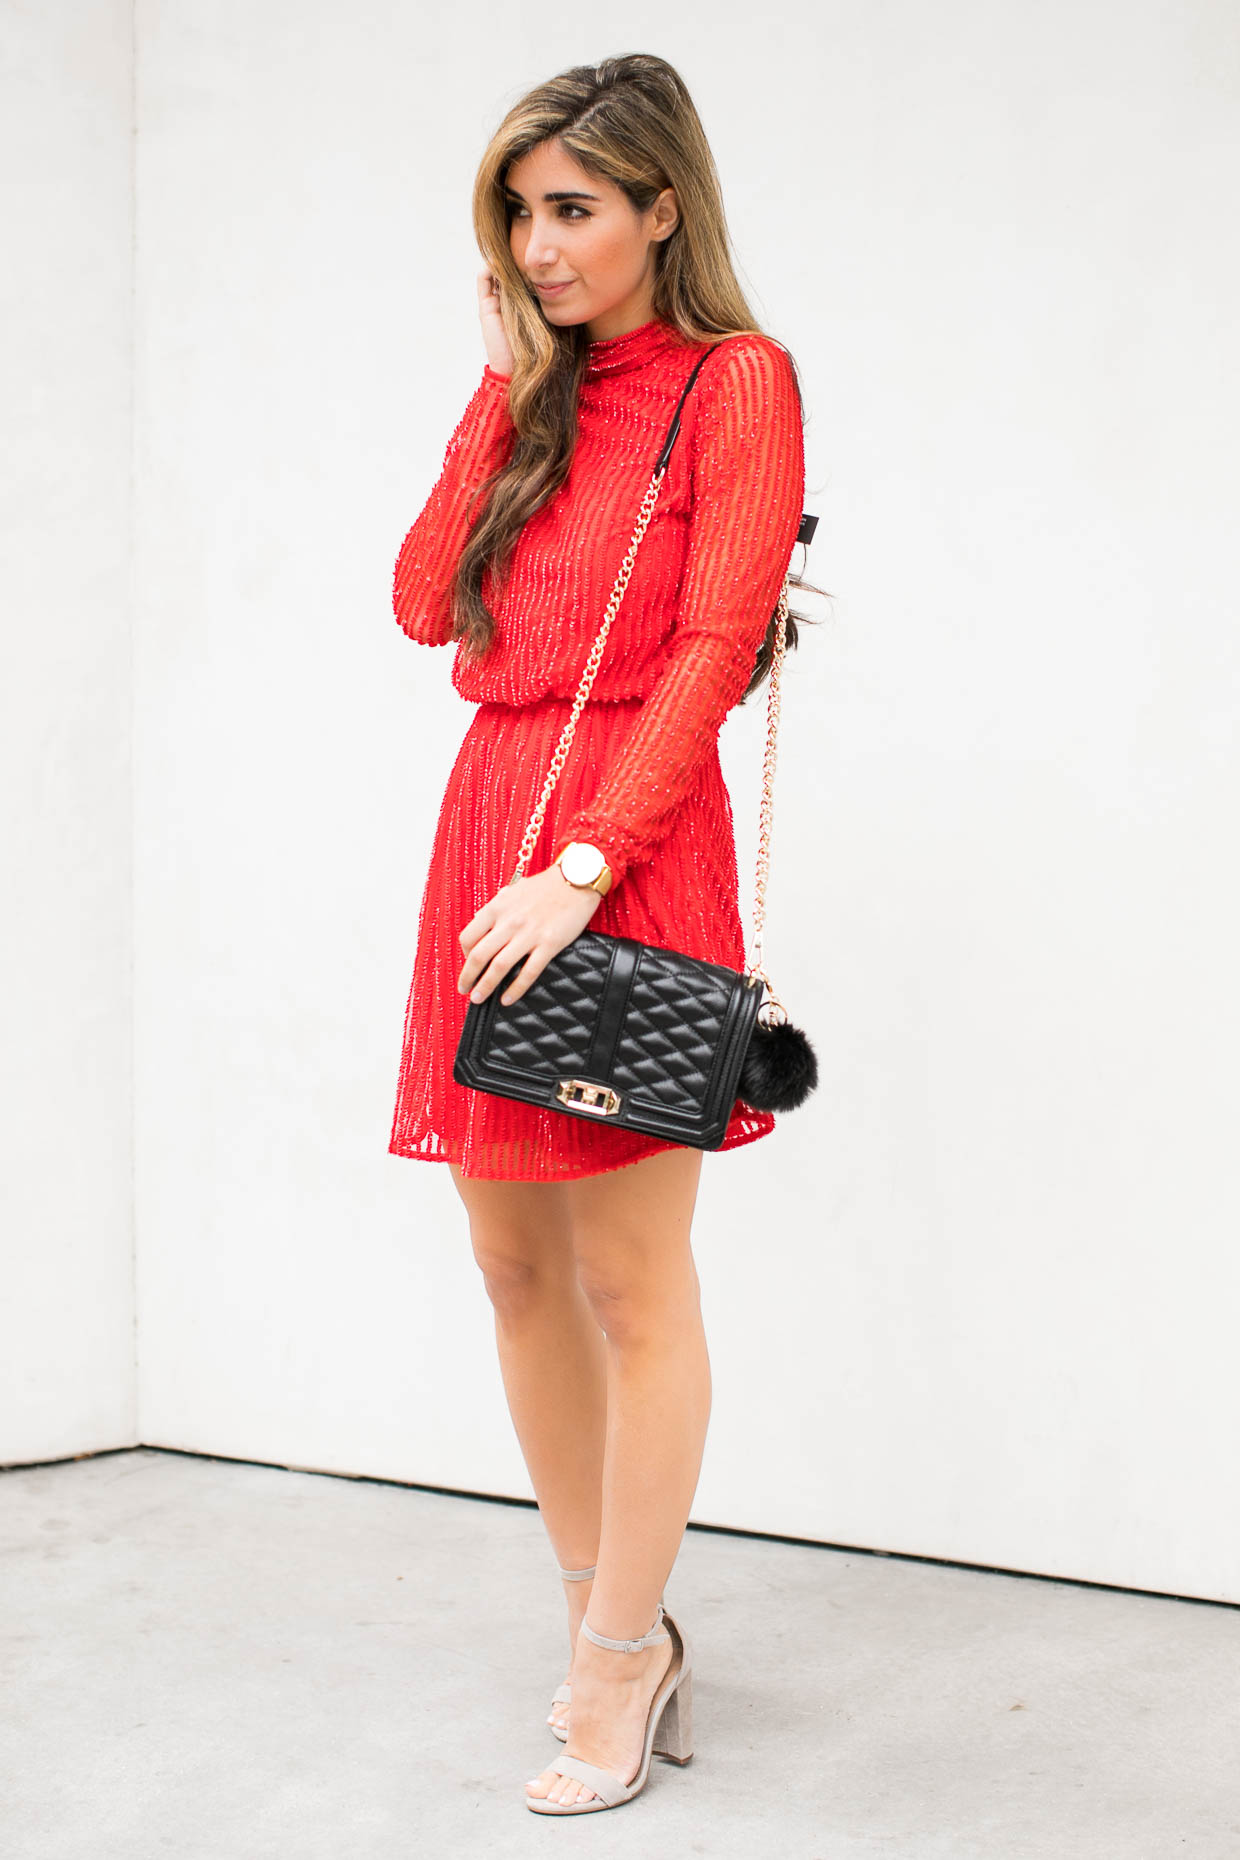 Fashion blogger The Darling Detail wears Topshop Sequin Blouson Dress, Steve Madden 'Stecy' Sandal, Rebecca Minkoff 'Love' Crossbody Bag, Larsson & Jennings 'Lugano' Mesh Strap Watch, and BP.  Faux Fur Pom Bag Charm